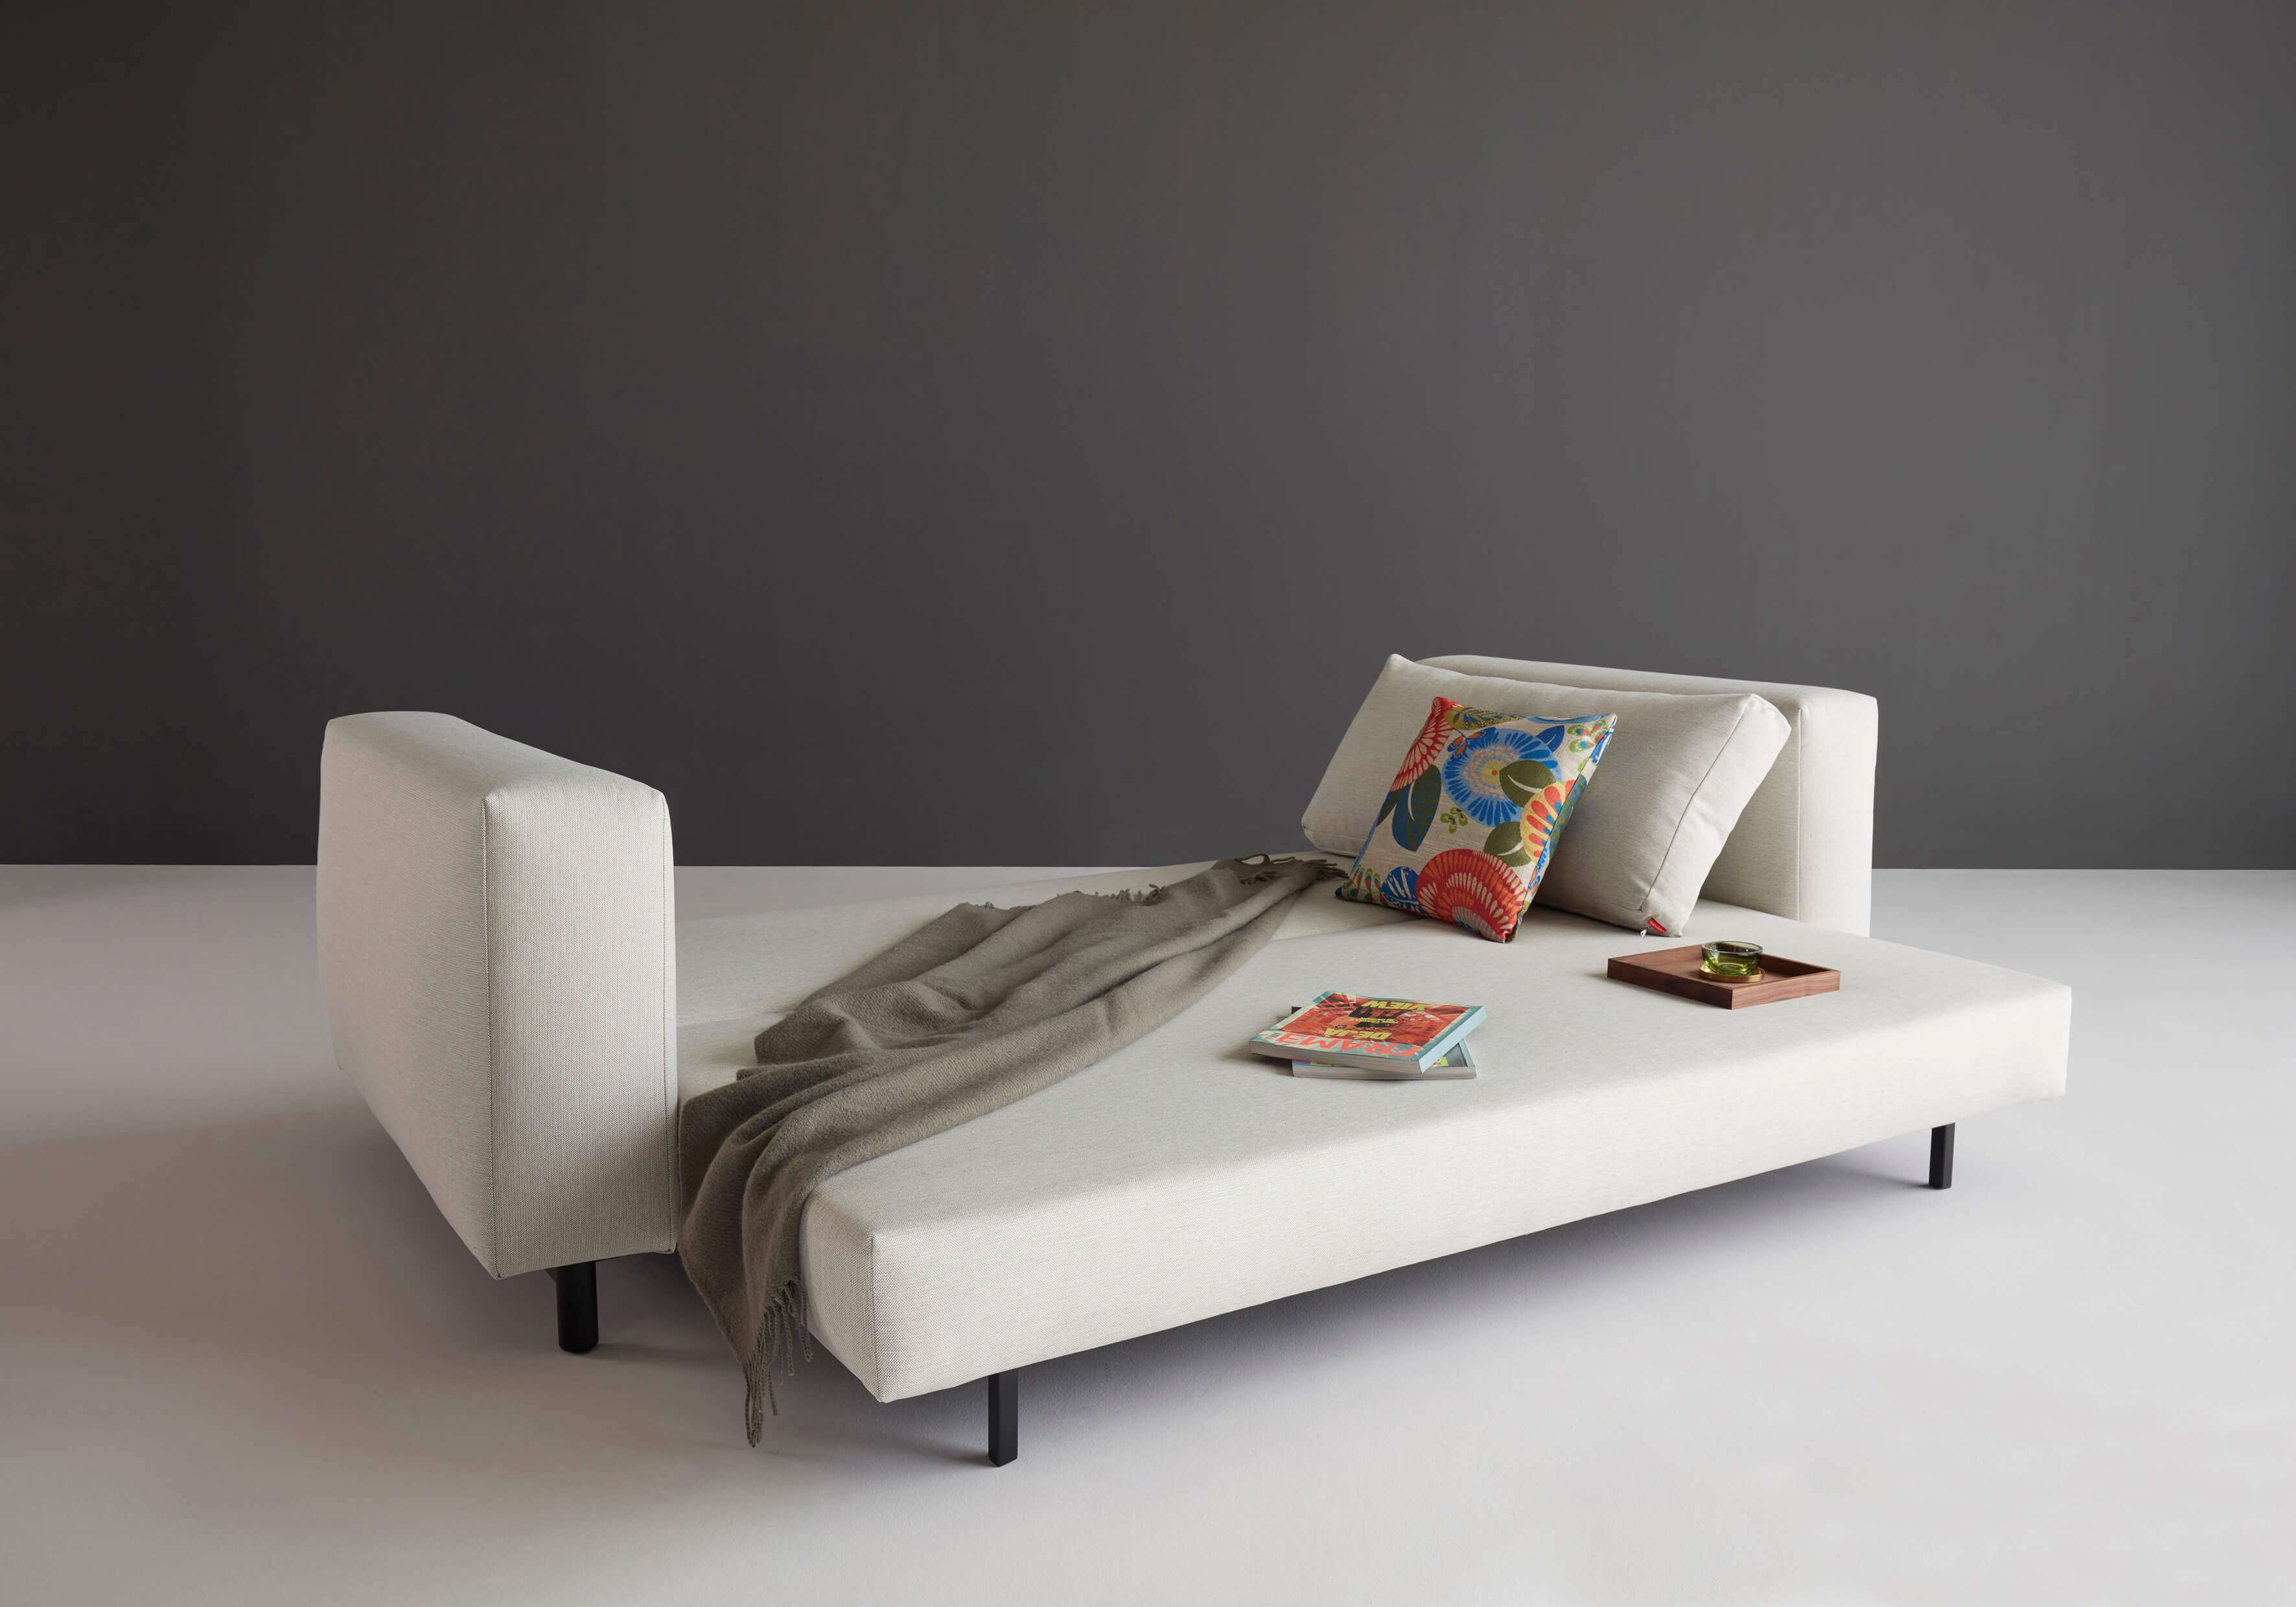 Trendy sofa bed unfolded side view